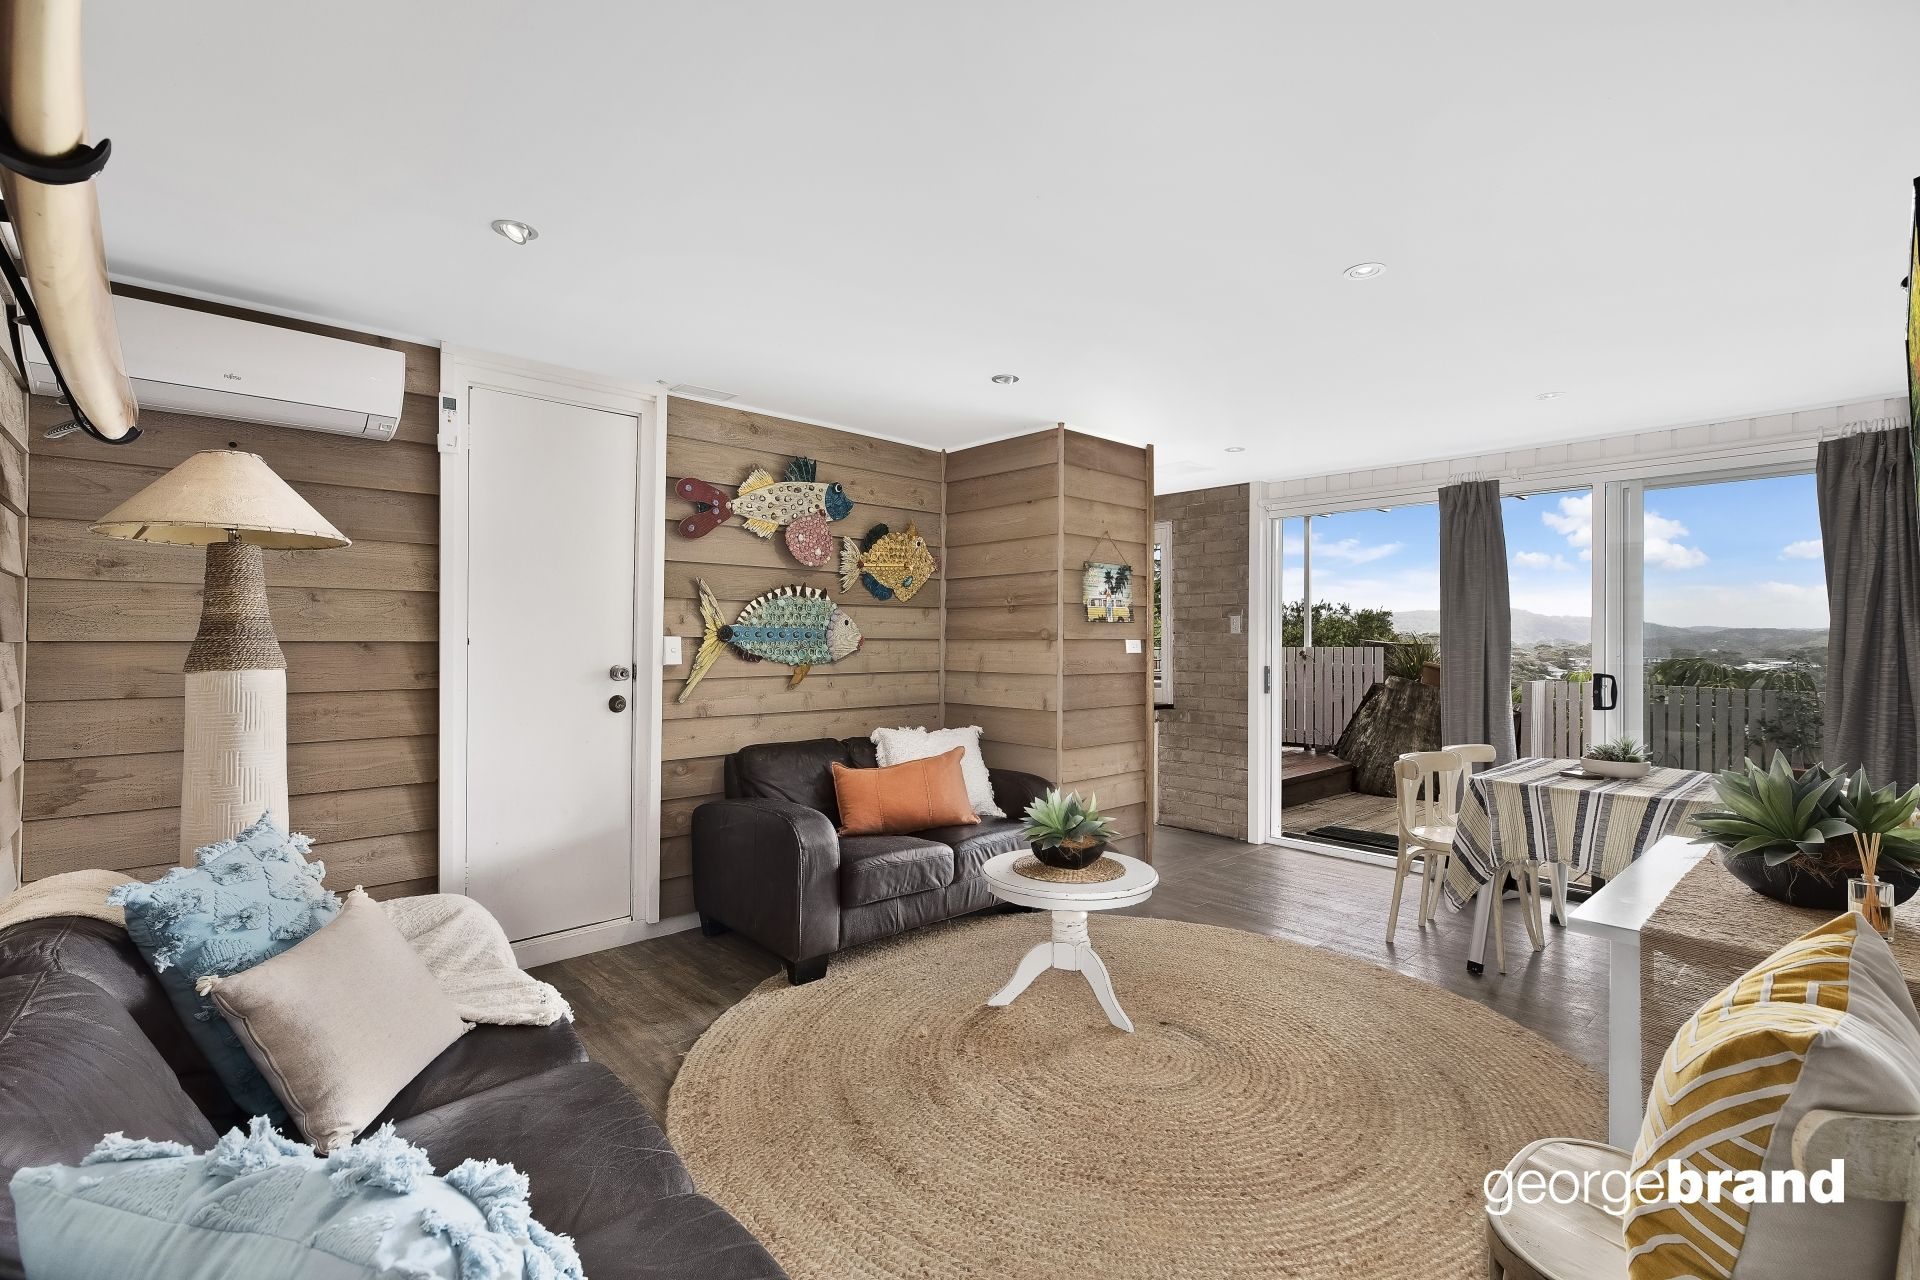 Avoca Beach Real Estate: YOUR FOREVER HOME